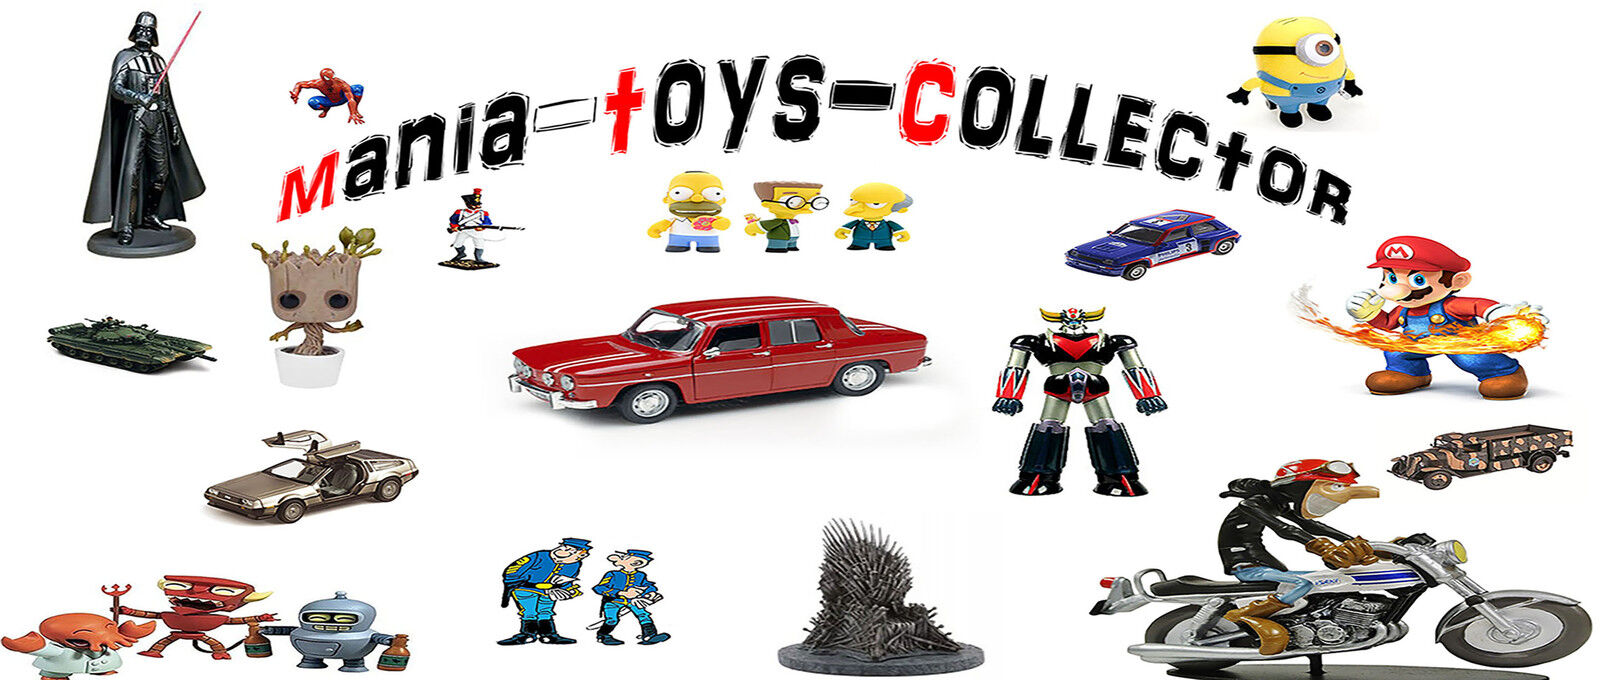 mania-toys-collector